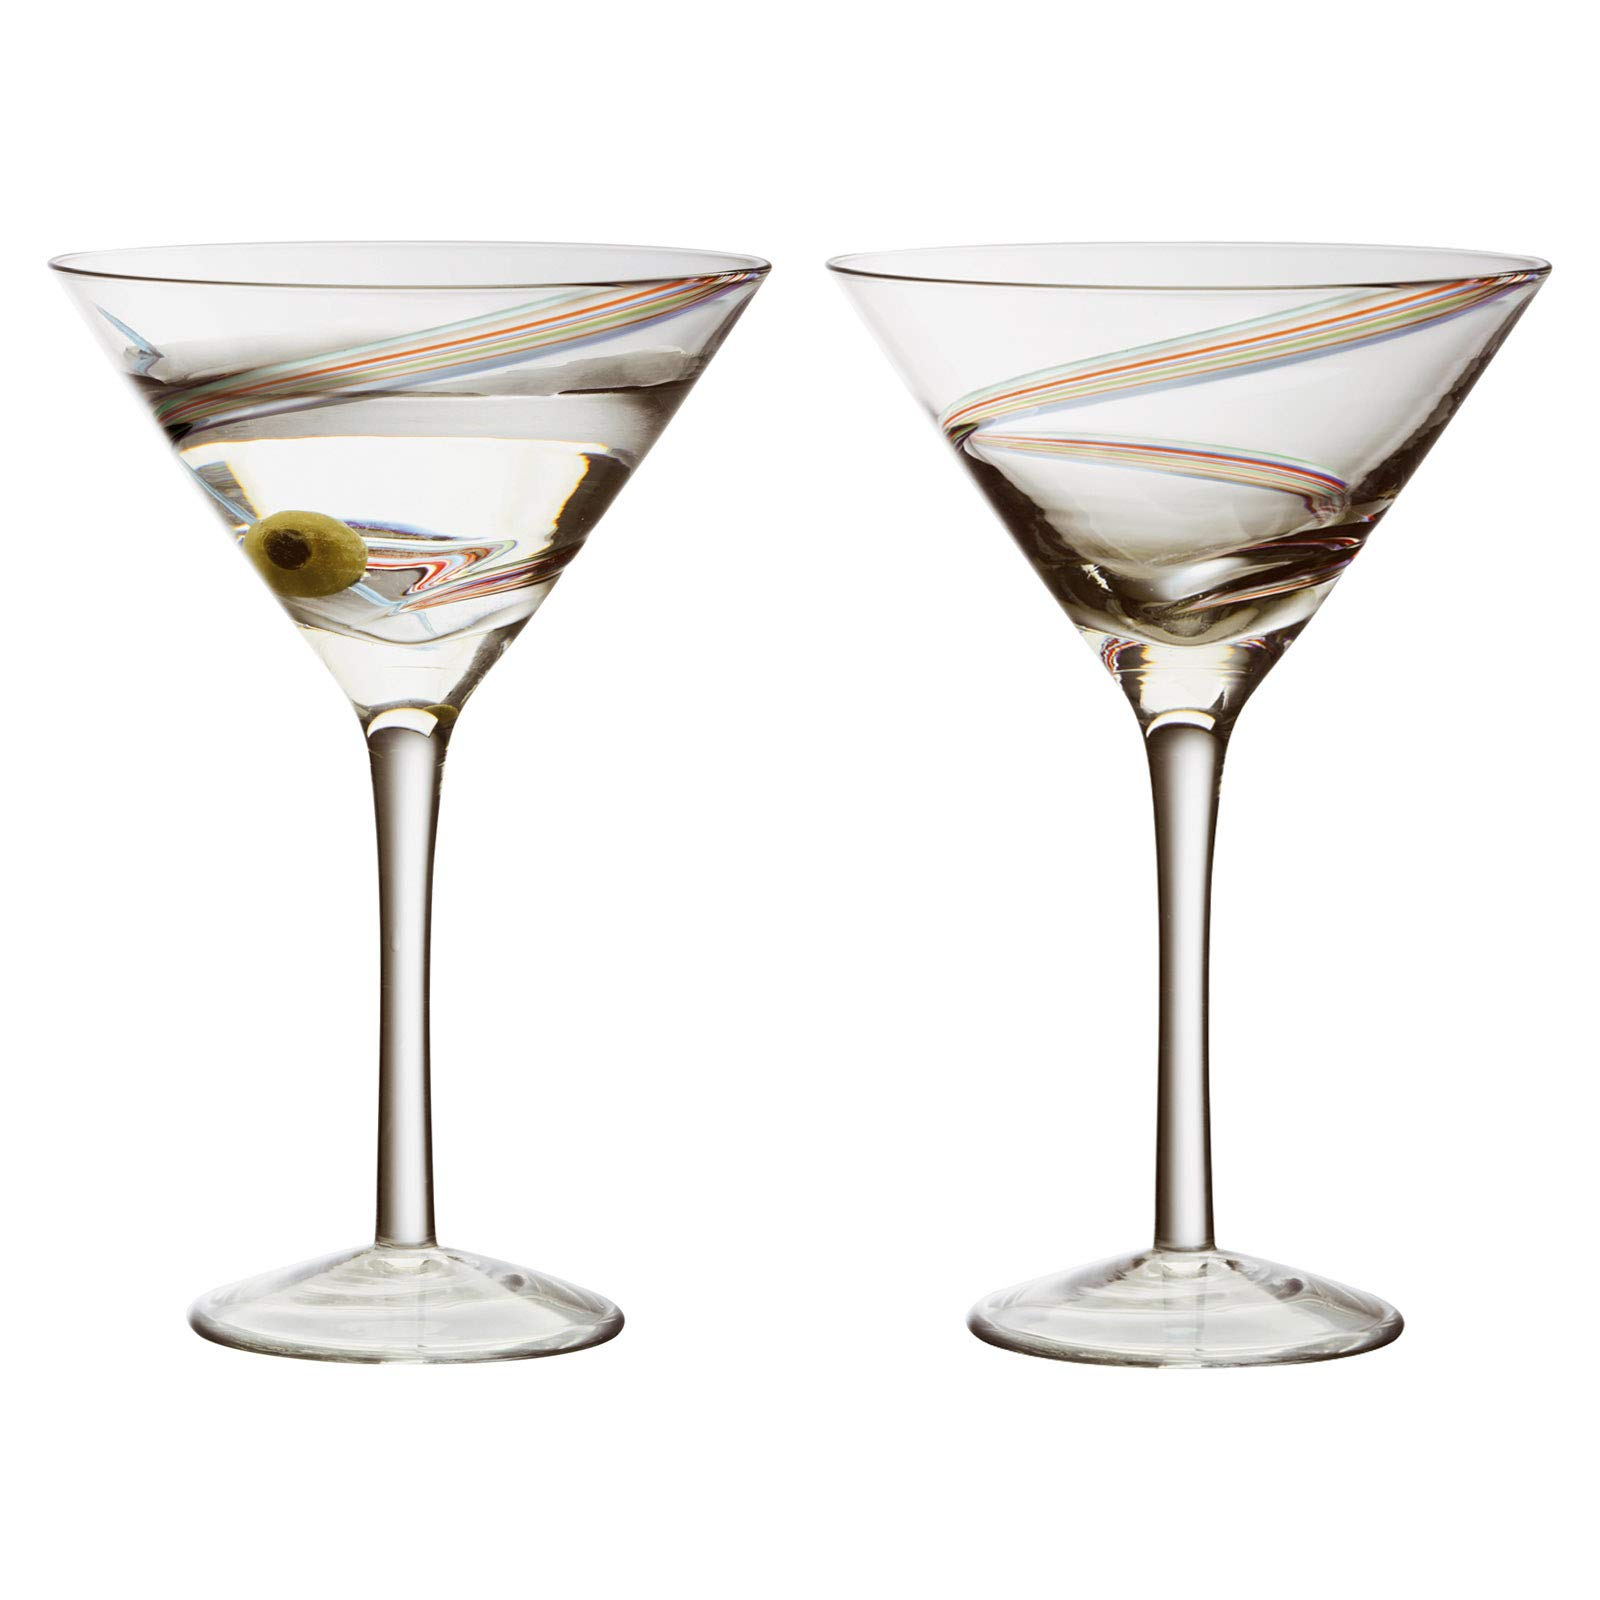 175 ml 2 Pieces Crystal Glass Set of 2 Martini Glasses Cocktail Glasses Elite Collection Restaurants and Parties Perfect for Home